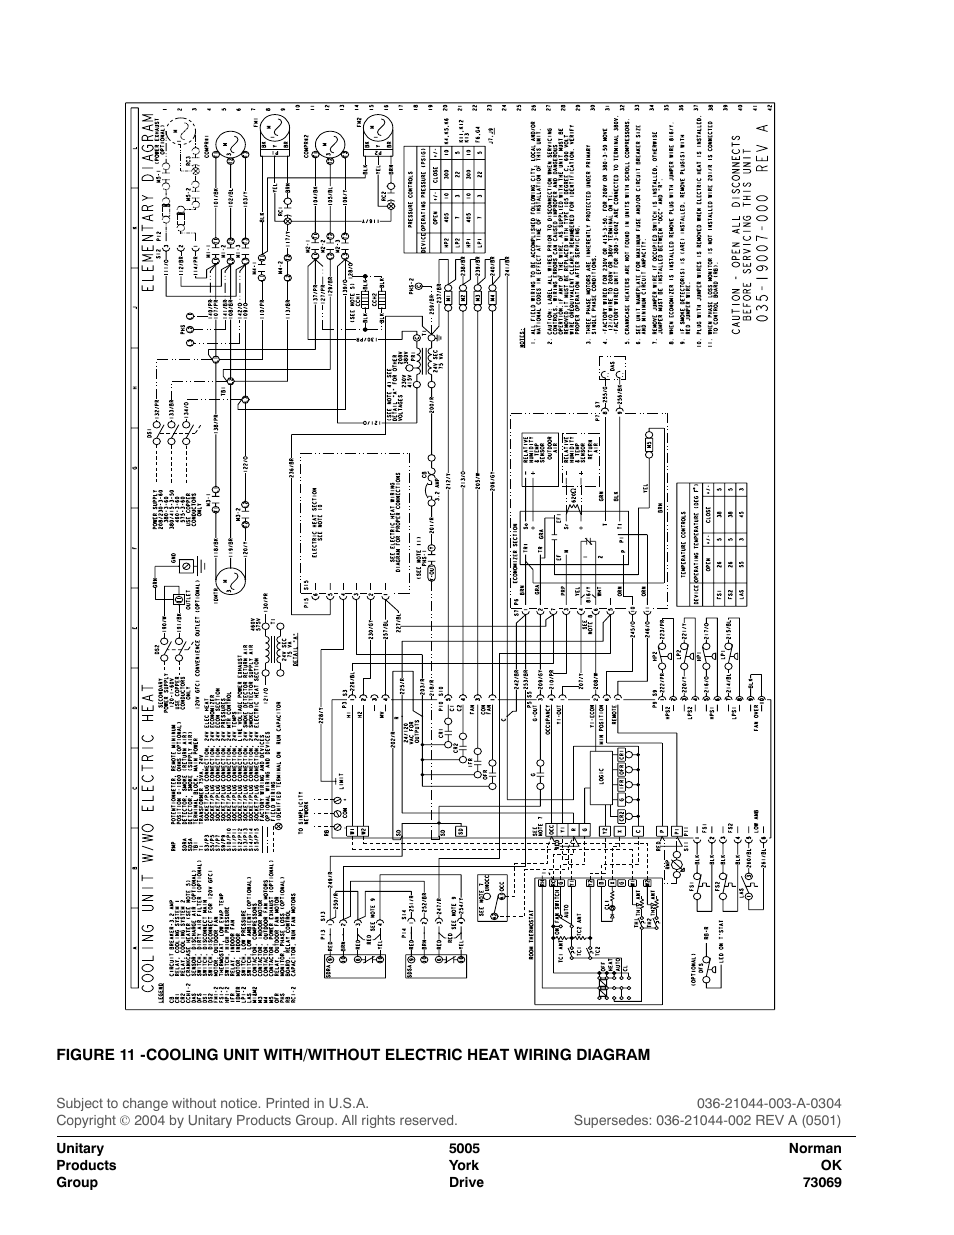 York Wiring Diagrams Diagram Third Level Furnace Schematic Database Library Friedrich